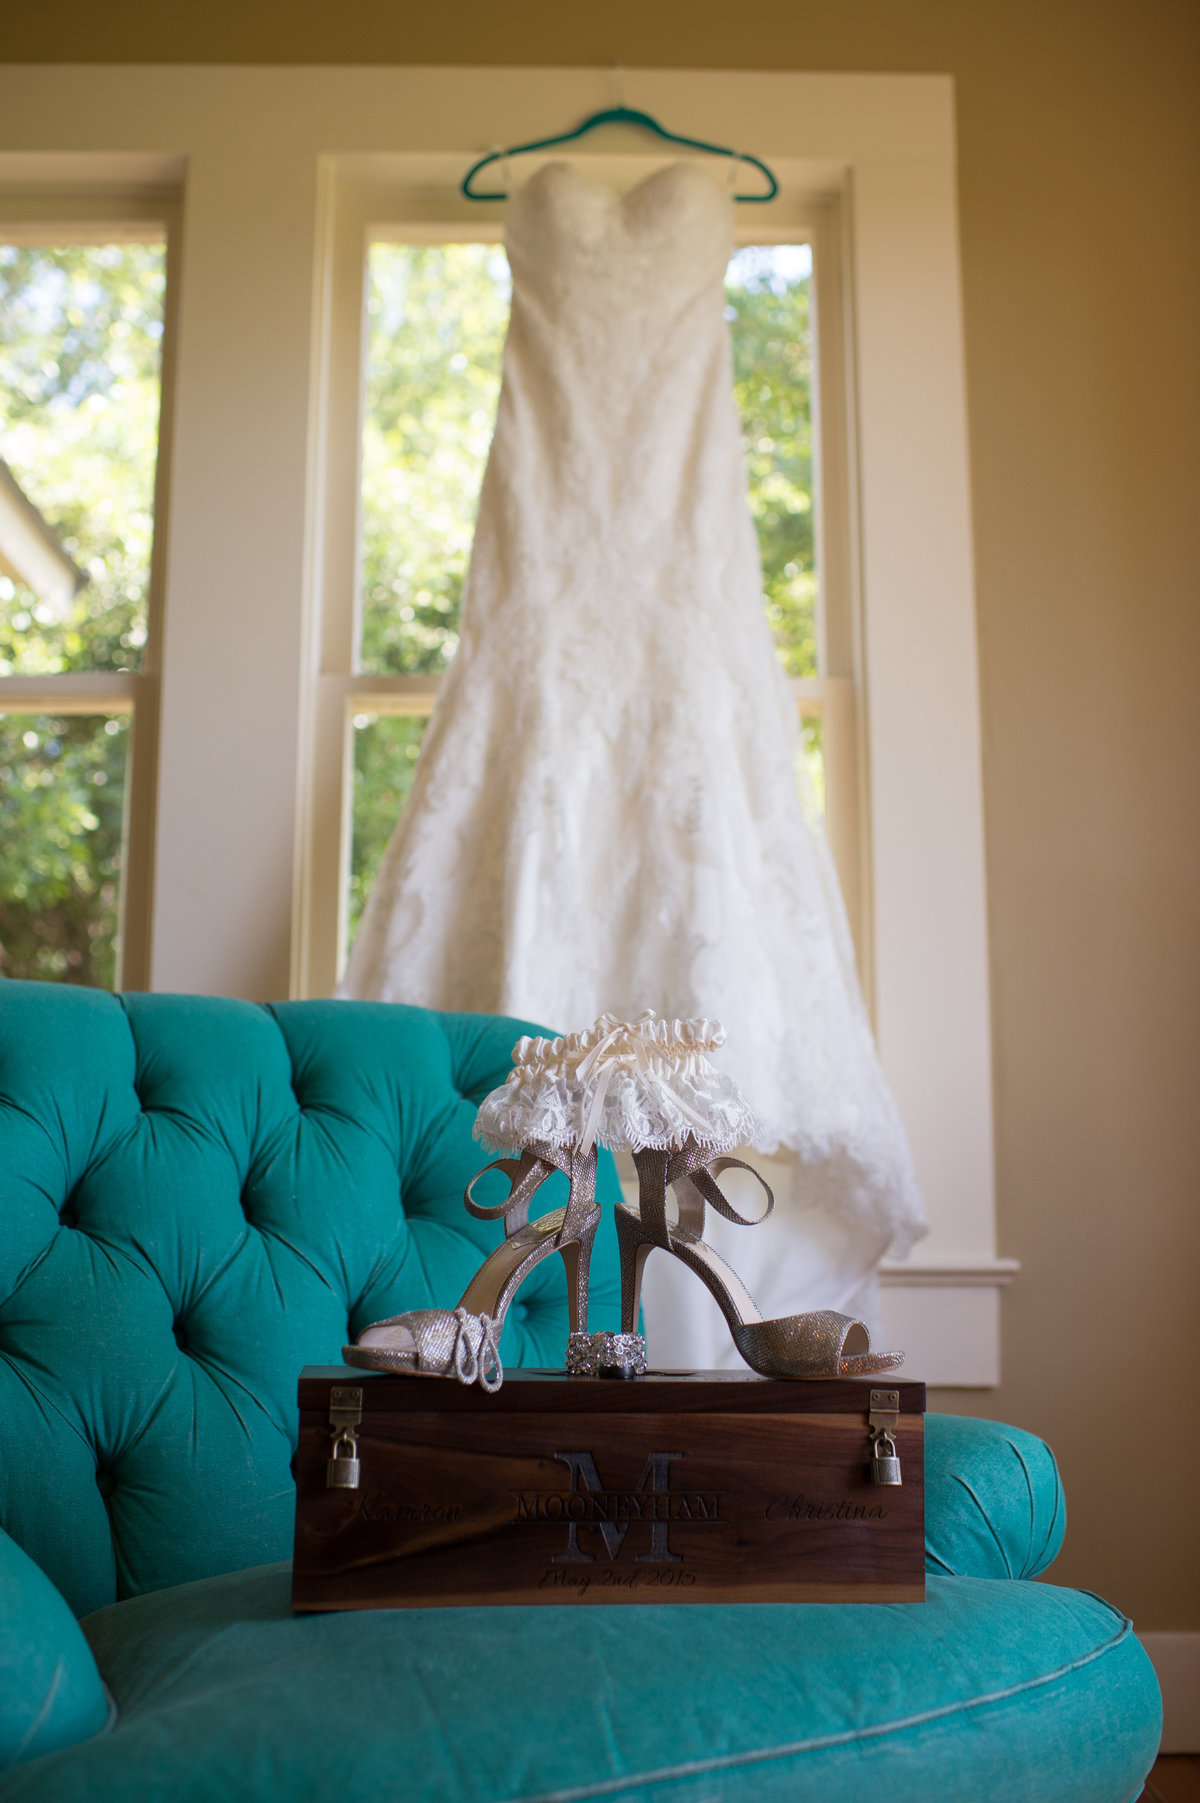 River Rock Event Center Texas  Brides accessories dress shoes and garter teal green chair